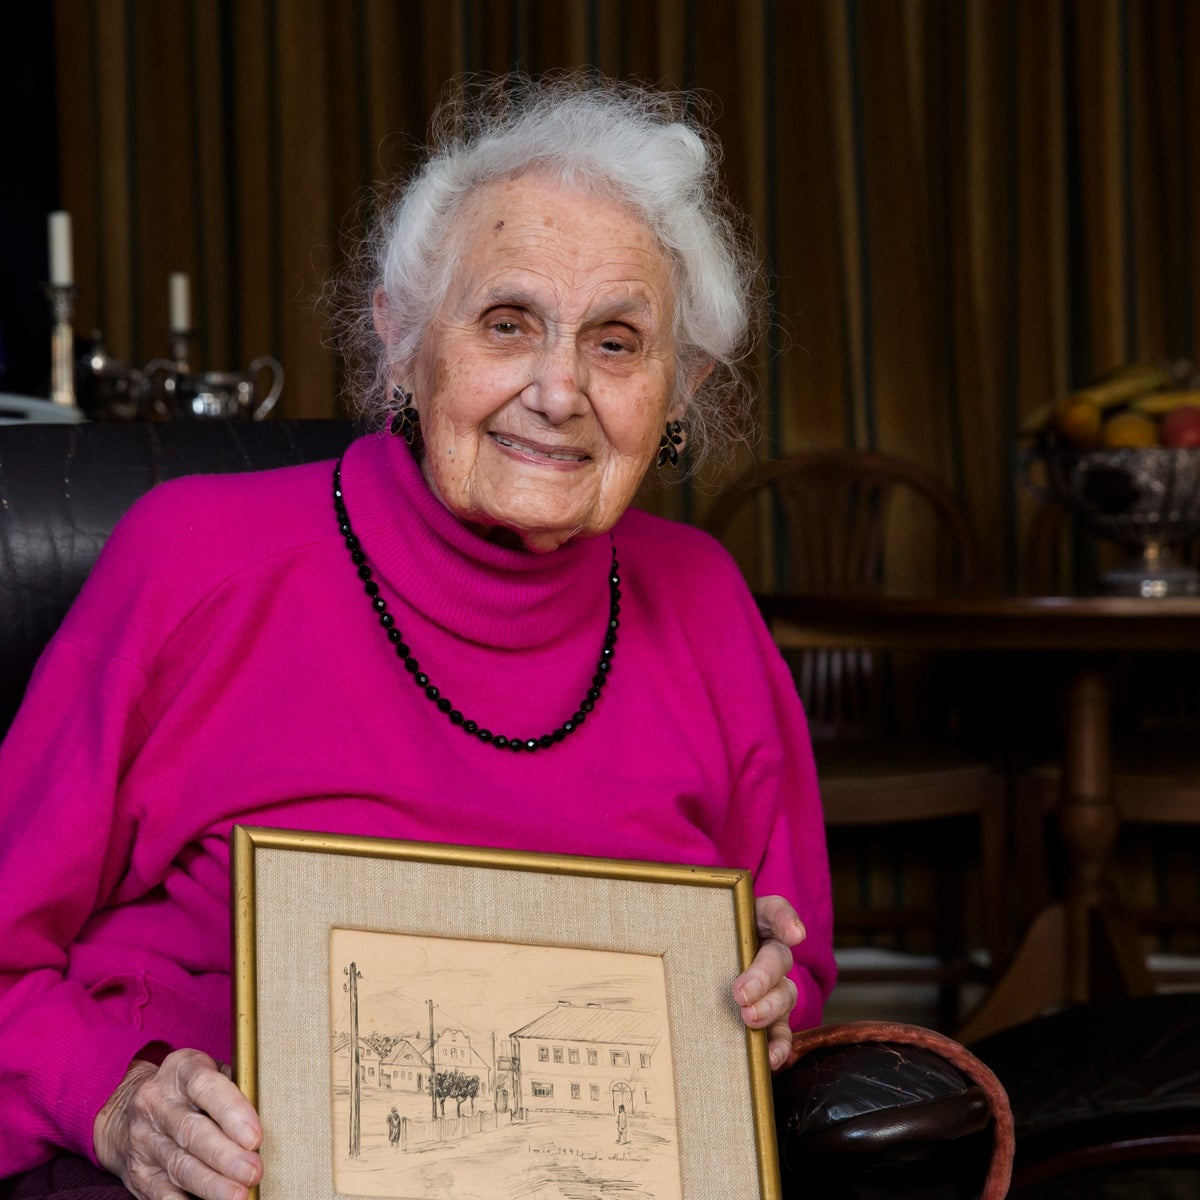 Tsiporah Singer, 96, holding a drawing  signed by a Wermacht soldier who helped save her life during the holocaust,  Netanya, Israel, 2019.